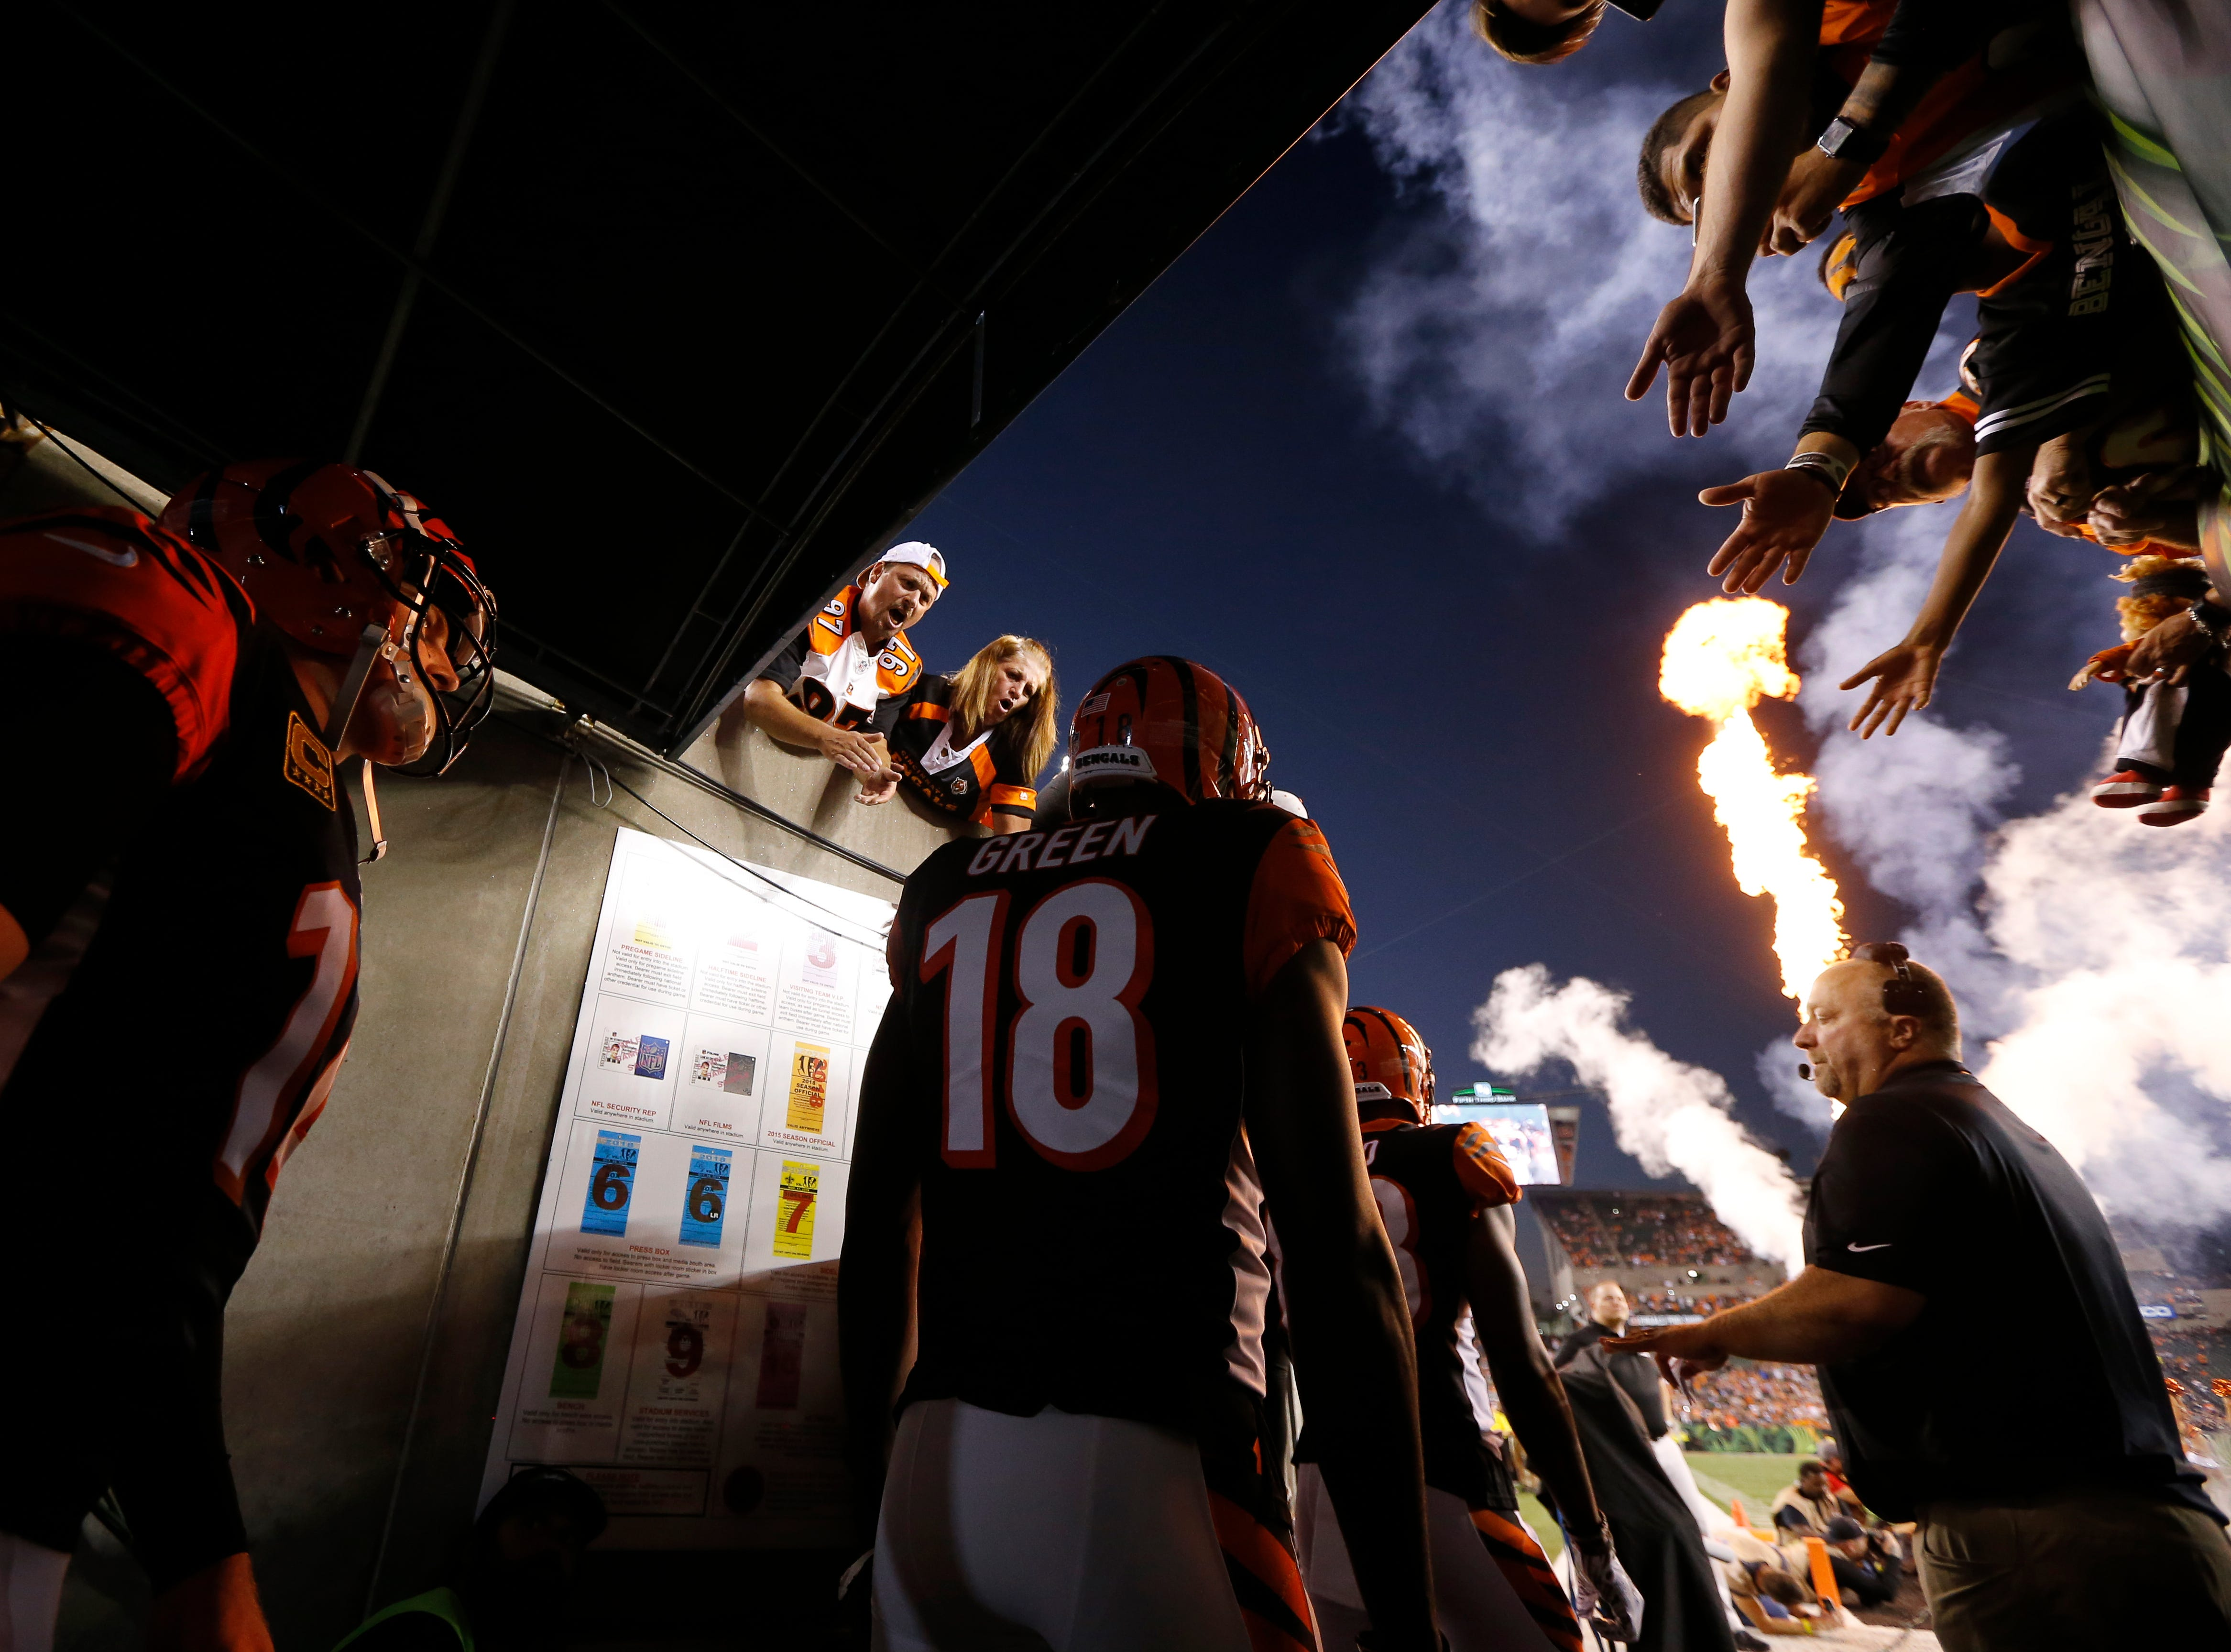 Cincinnati Bengals quarterback Andy Dalton (14) and wide receiver A.J. Green (18) wait in the tunnel for introduction before the first quarter of the NFL Week 2 game between the Cincinnati Bengals and the Baltimore Ravens at Paul Brown Stadium in downtown Cincinnati on Thursday, Sept. 13, 2018. The Bengals led 28-14 at halftime.